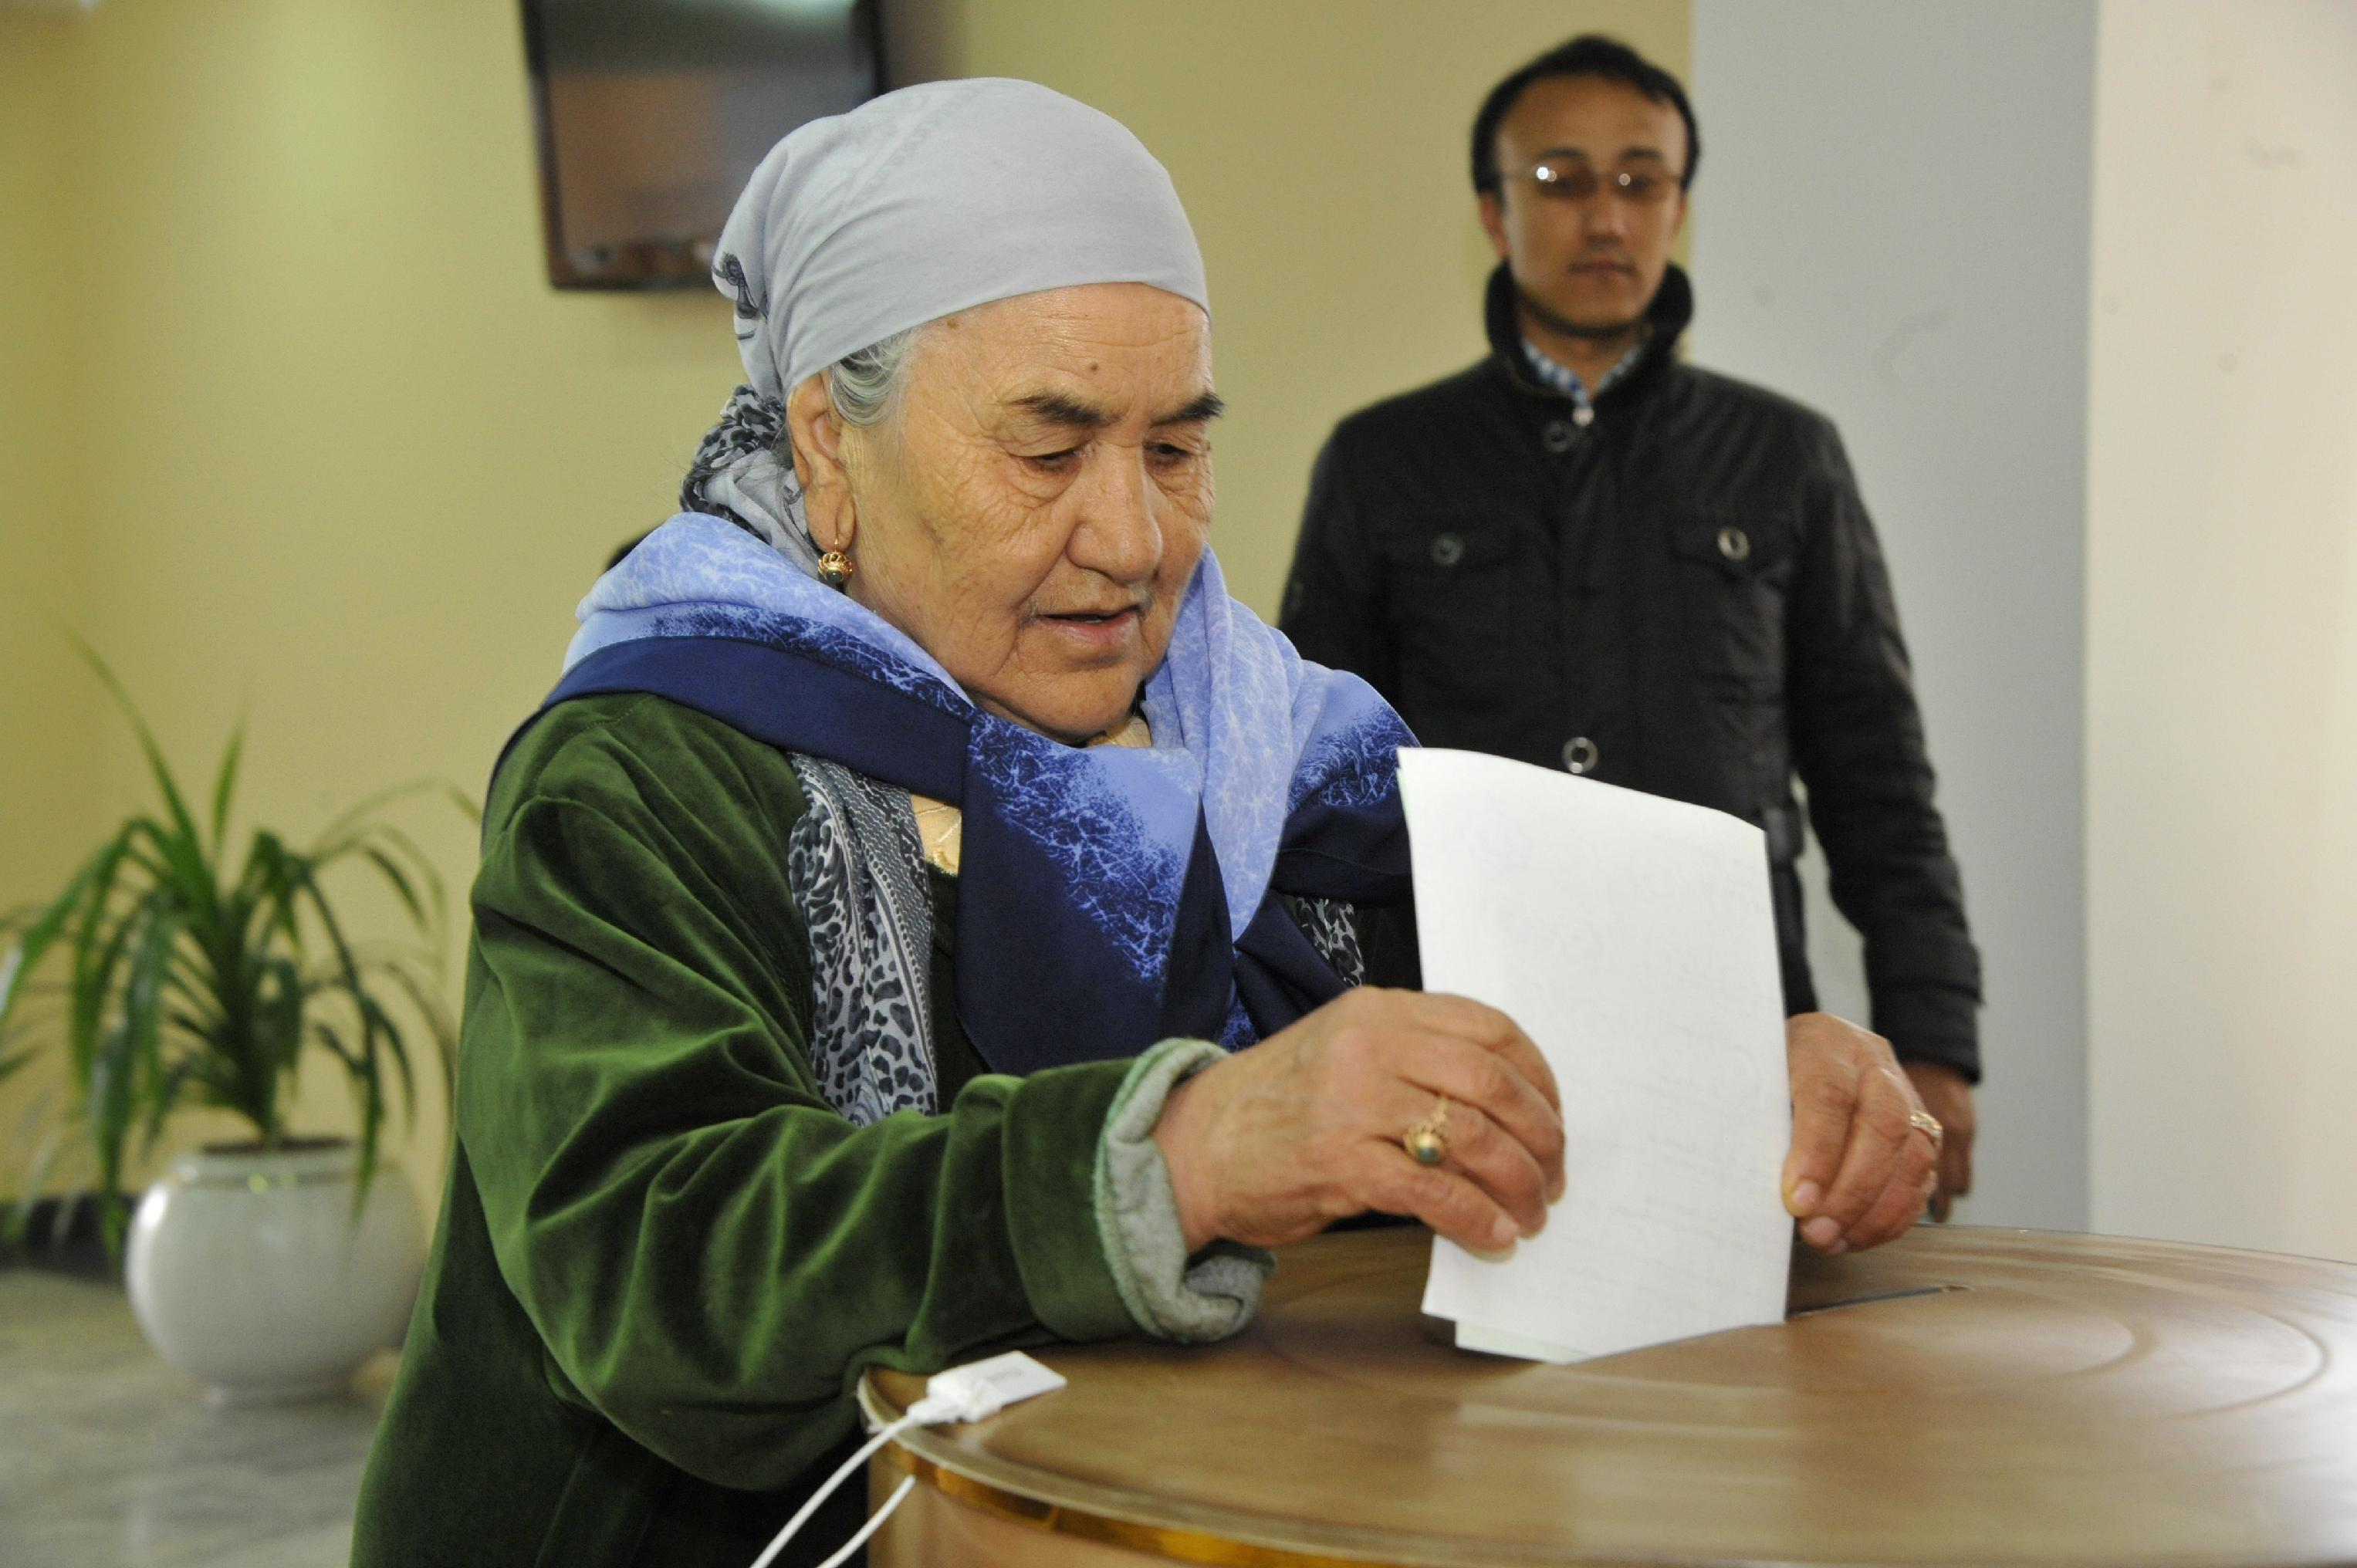 Uzbekistan's election sees turnout at 91 percent